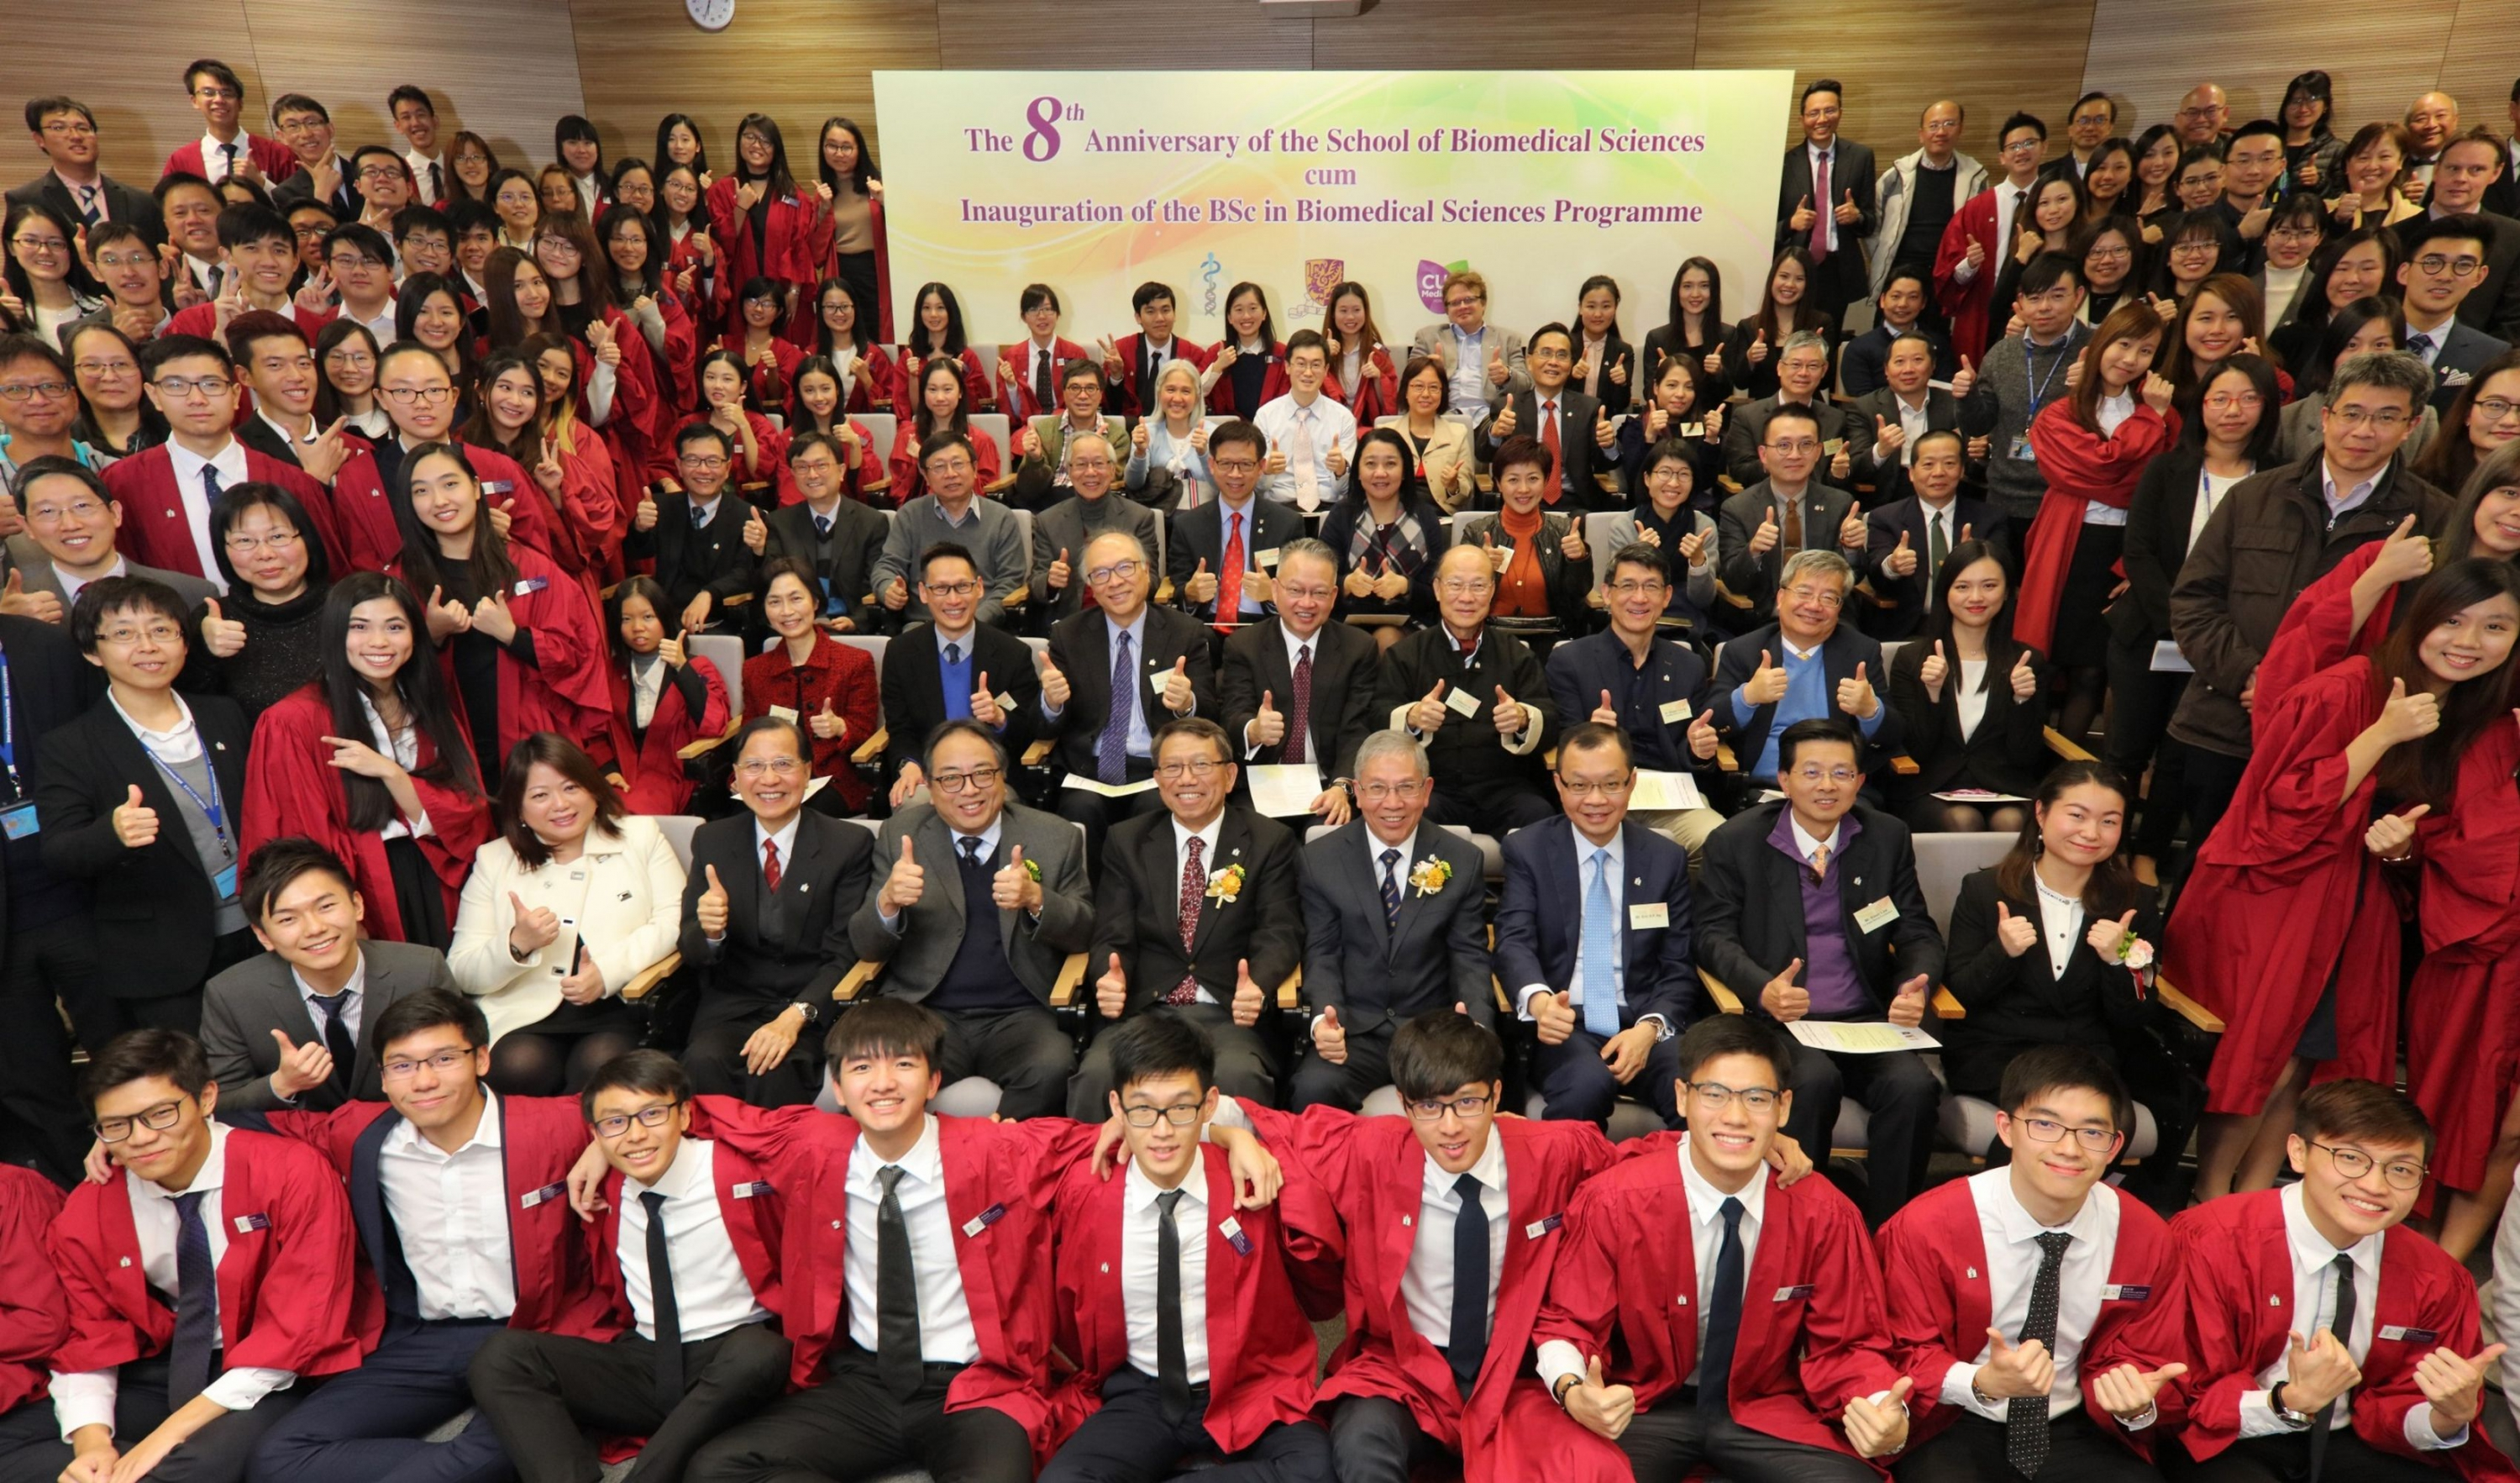 The School of Biomedical Sciences at CUHK celebrates its 8th anniversary. Over a hundred guests, teachers, students and school members gather together to review the past and look forward to the future.